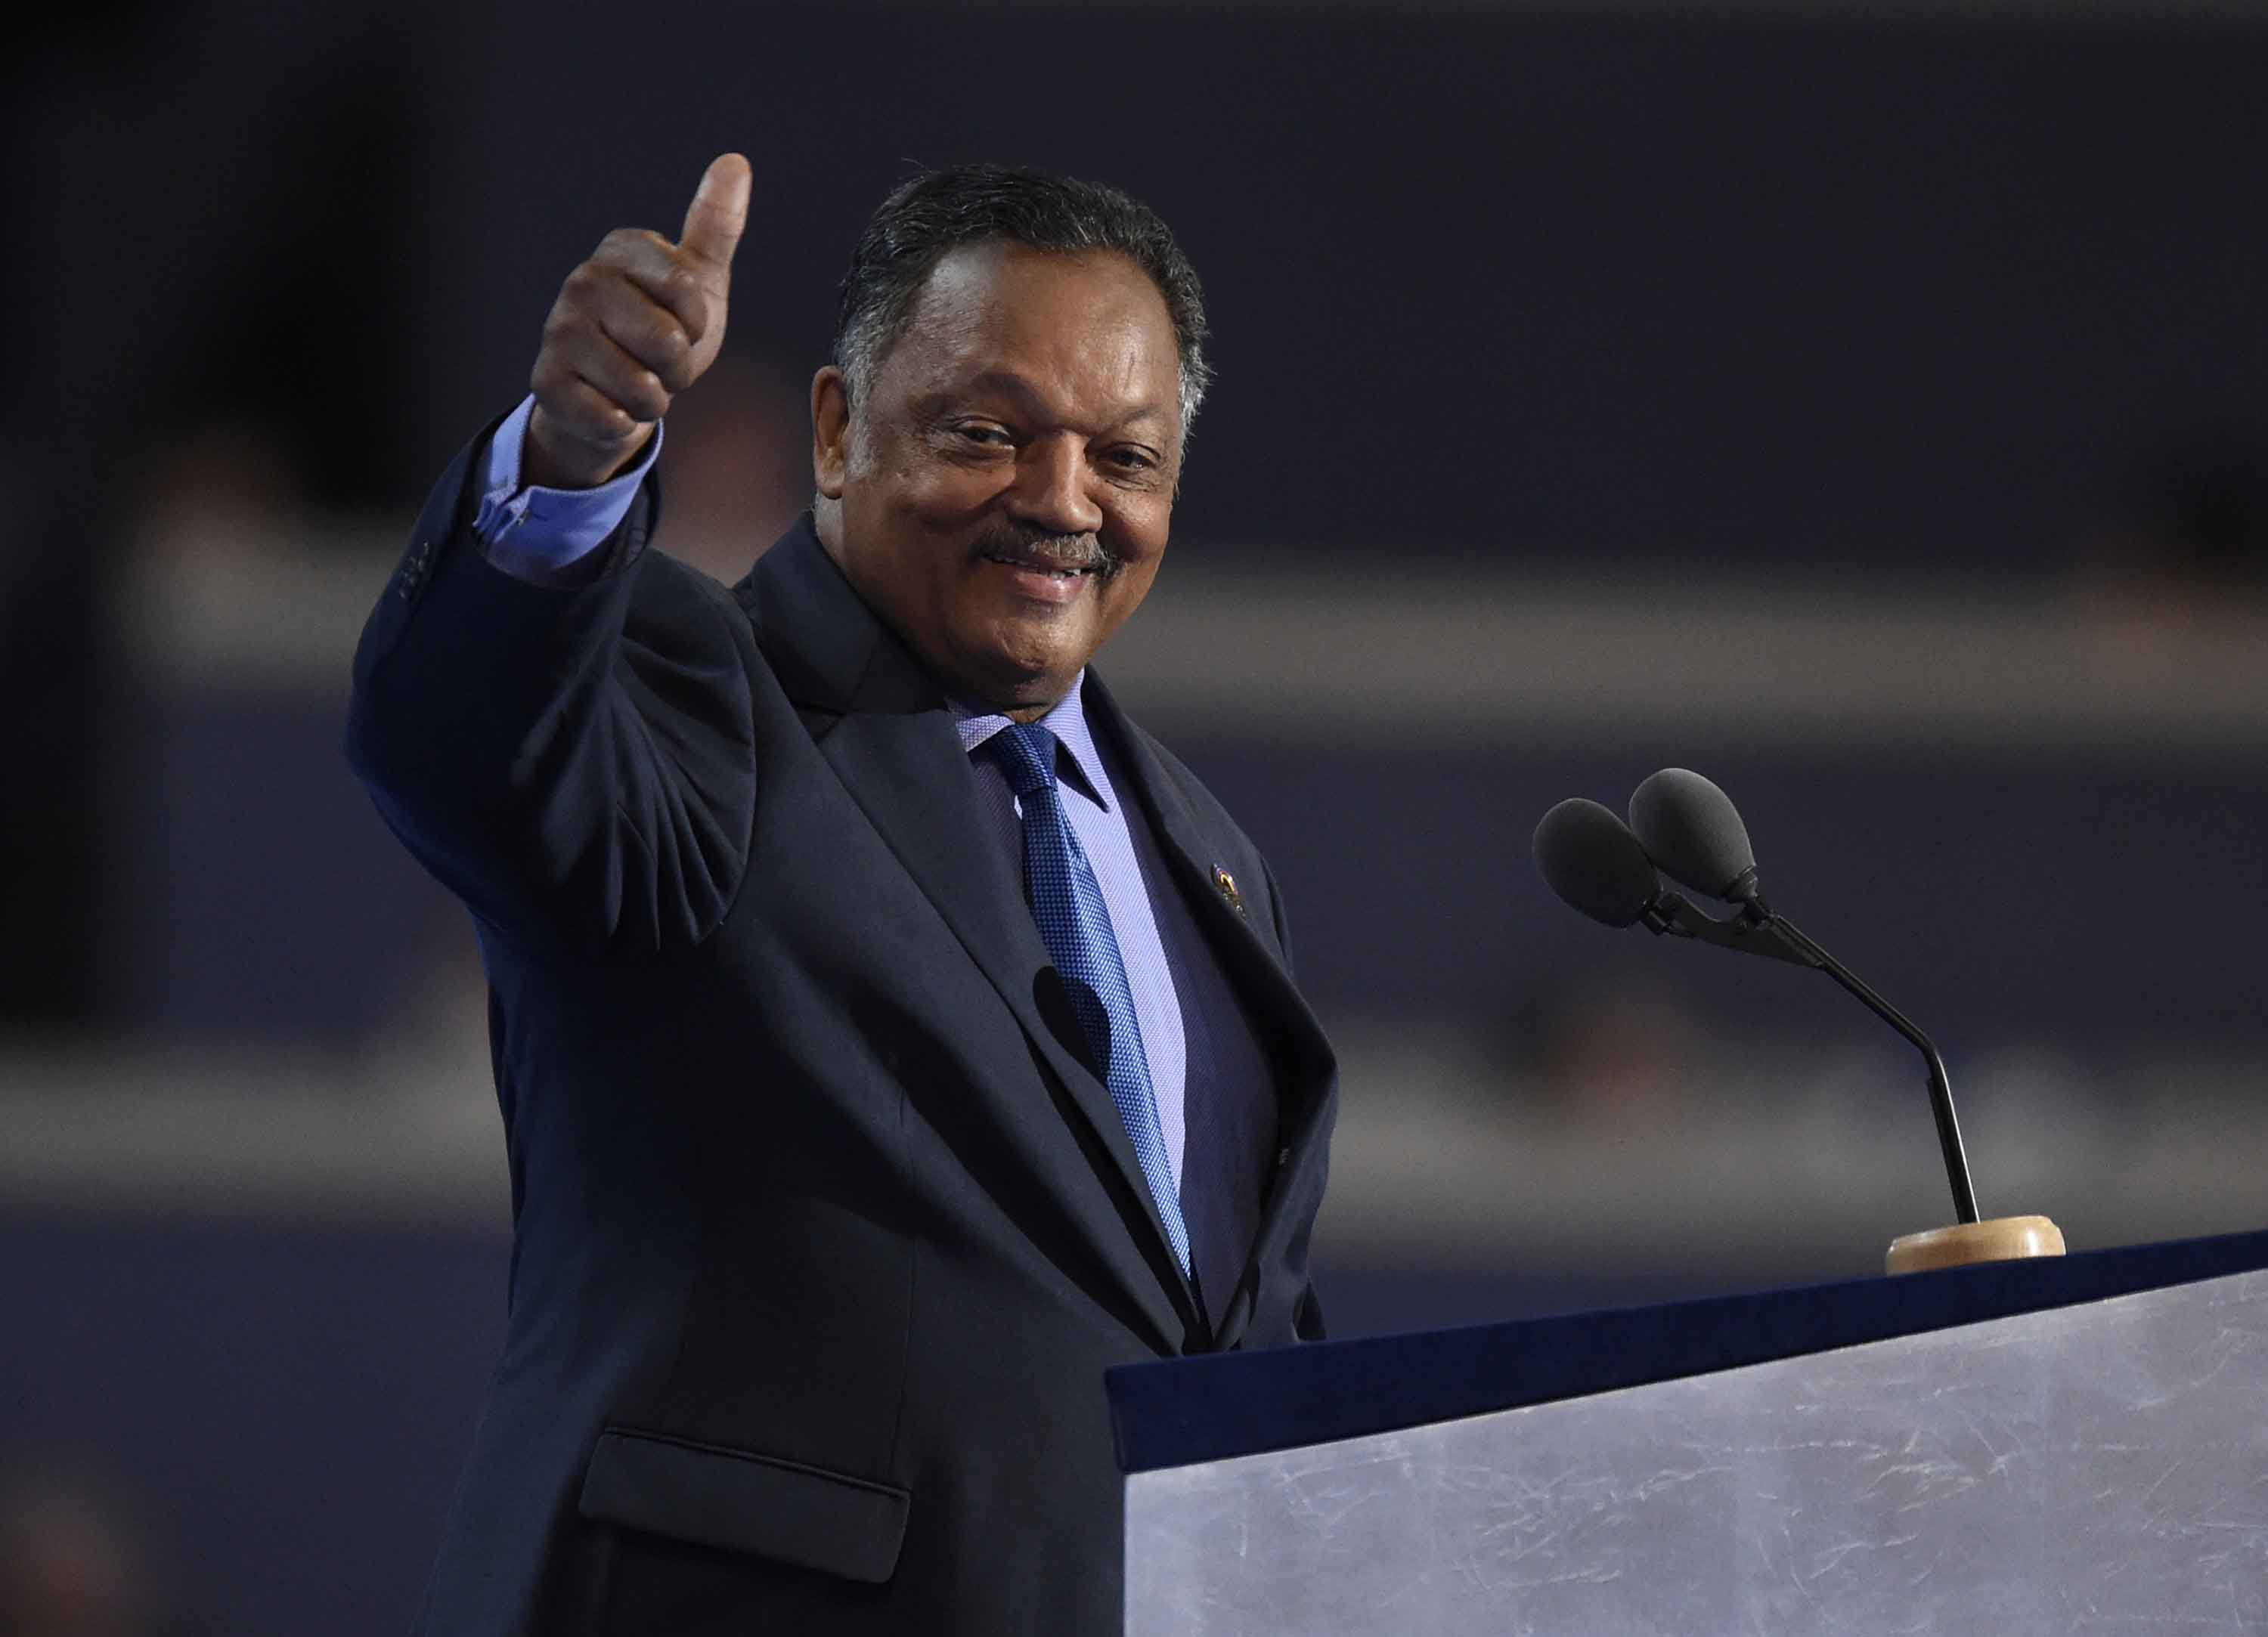 Rev. Jesse Jackson speaks on the third day of the Democratic National Convention at the Wells Fargo Center in Philadelphia on Wednesday, July 27, 2016. (Clem Murray/Philadelphia Inquirer/TNS)